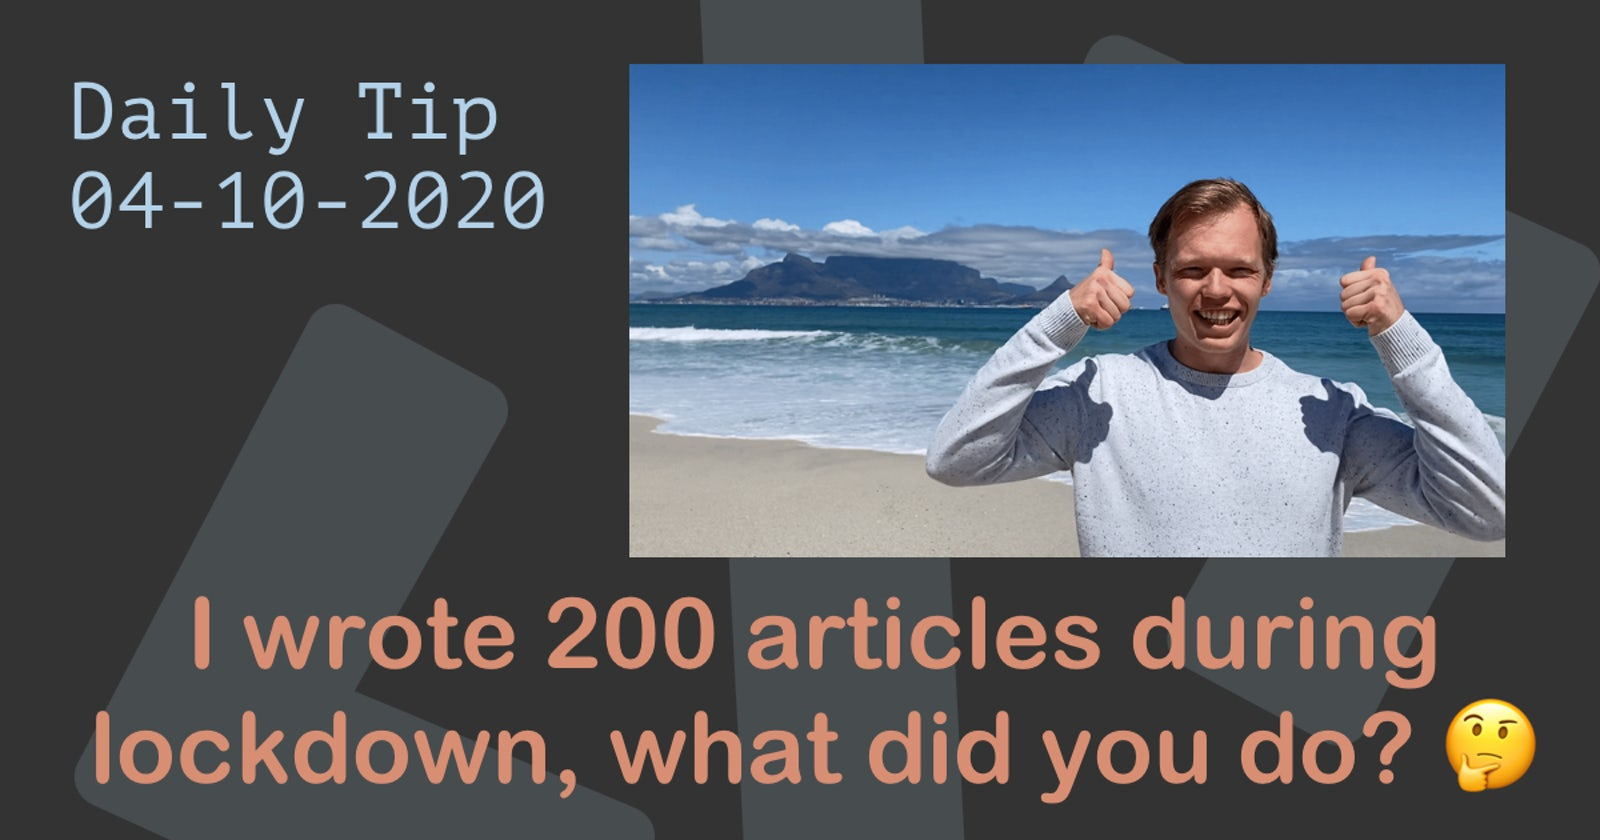 I wrote 200 articles during the lockdown, what did you do? 🤔